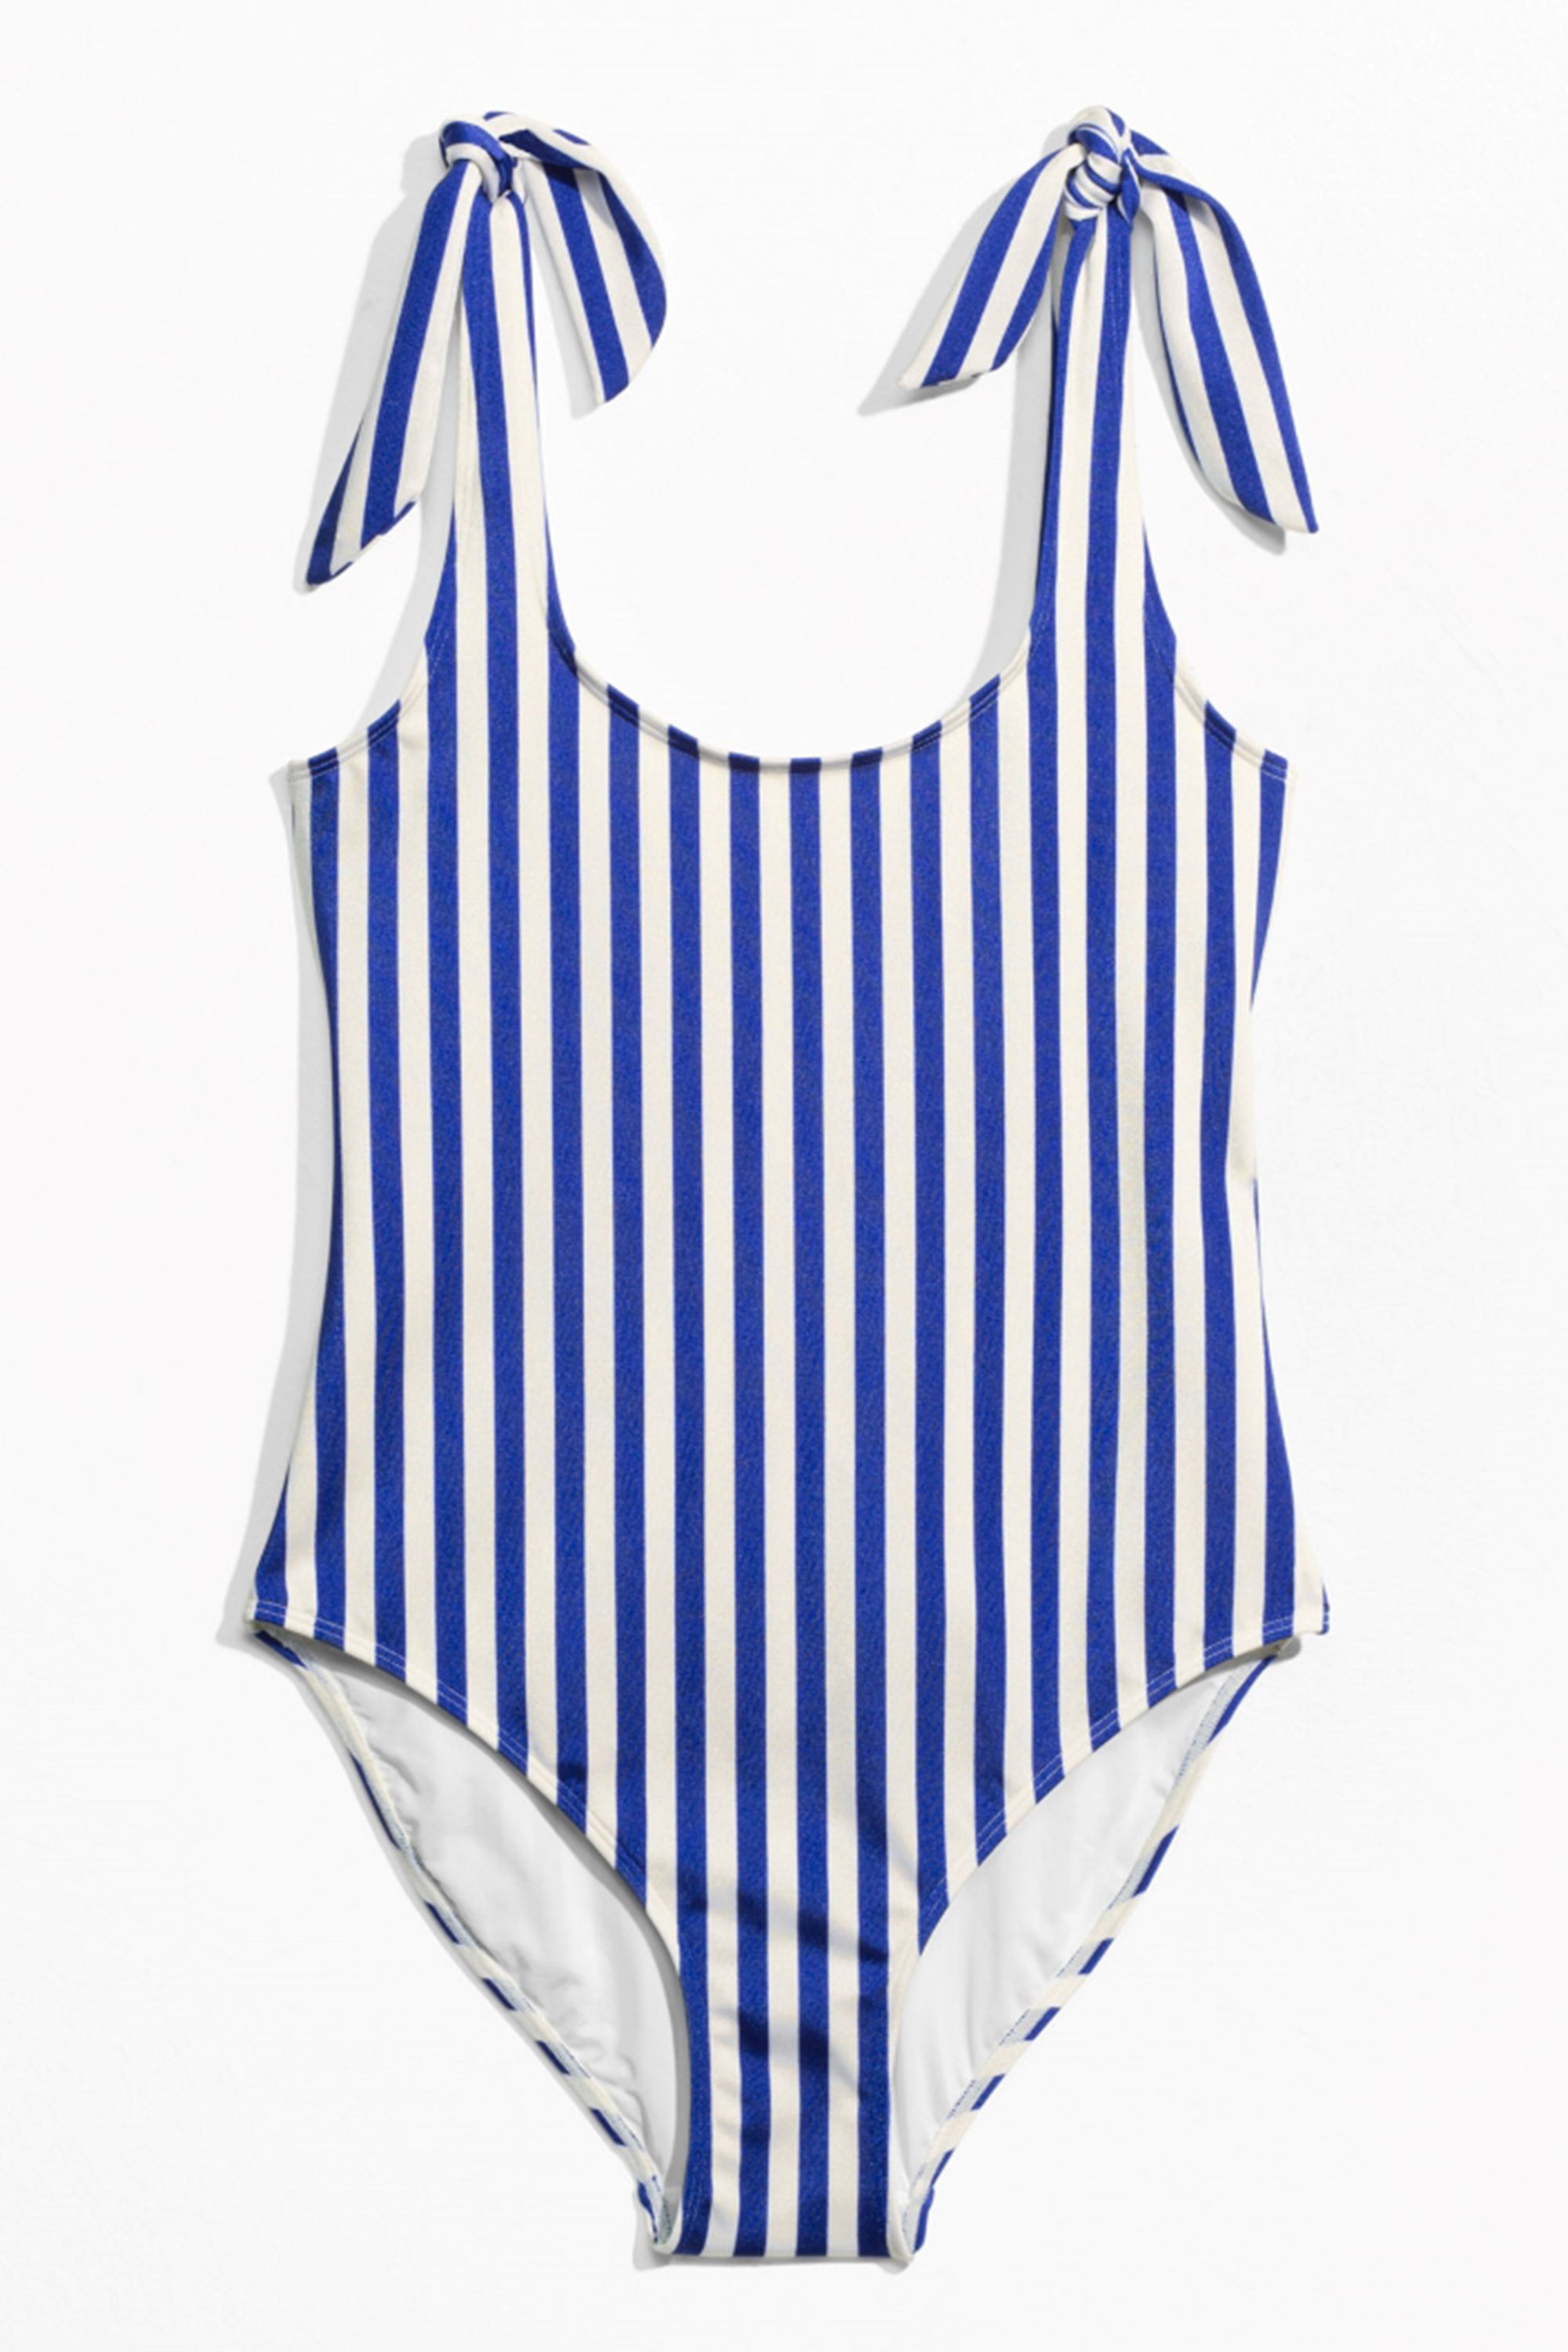 """<p> & Other Stories Classic Cut Swimsuit, $55; <a href=""""http://www.stories.com/us/Swimwear/Swimsuits/Classic_Cut_Swimsuit/101223880-0483191002.2"""" data-tracking-id=""""recirc-text-link"""" target=""""_blank"""">stories.com</a></p><p><span class=""""redactor-invisible-space"""" data-verified=""""redactor"""" data-redactor-tag=""""span"""" data-redactor-class=""""redactor-invisible-space""""></span></p>"""